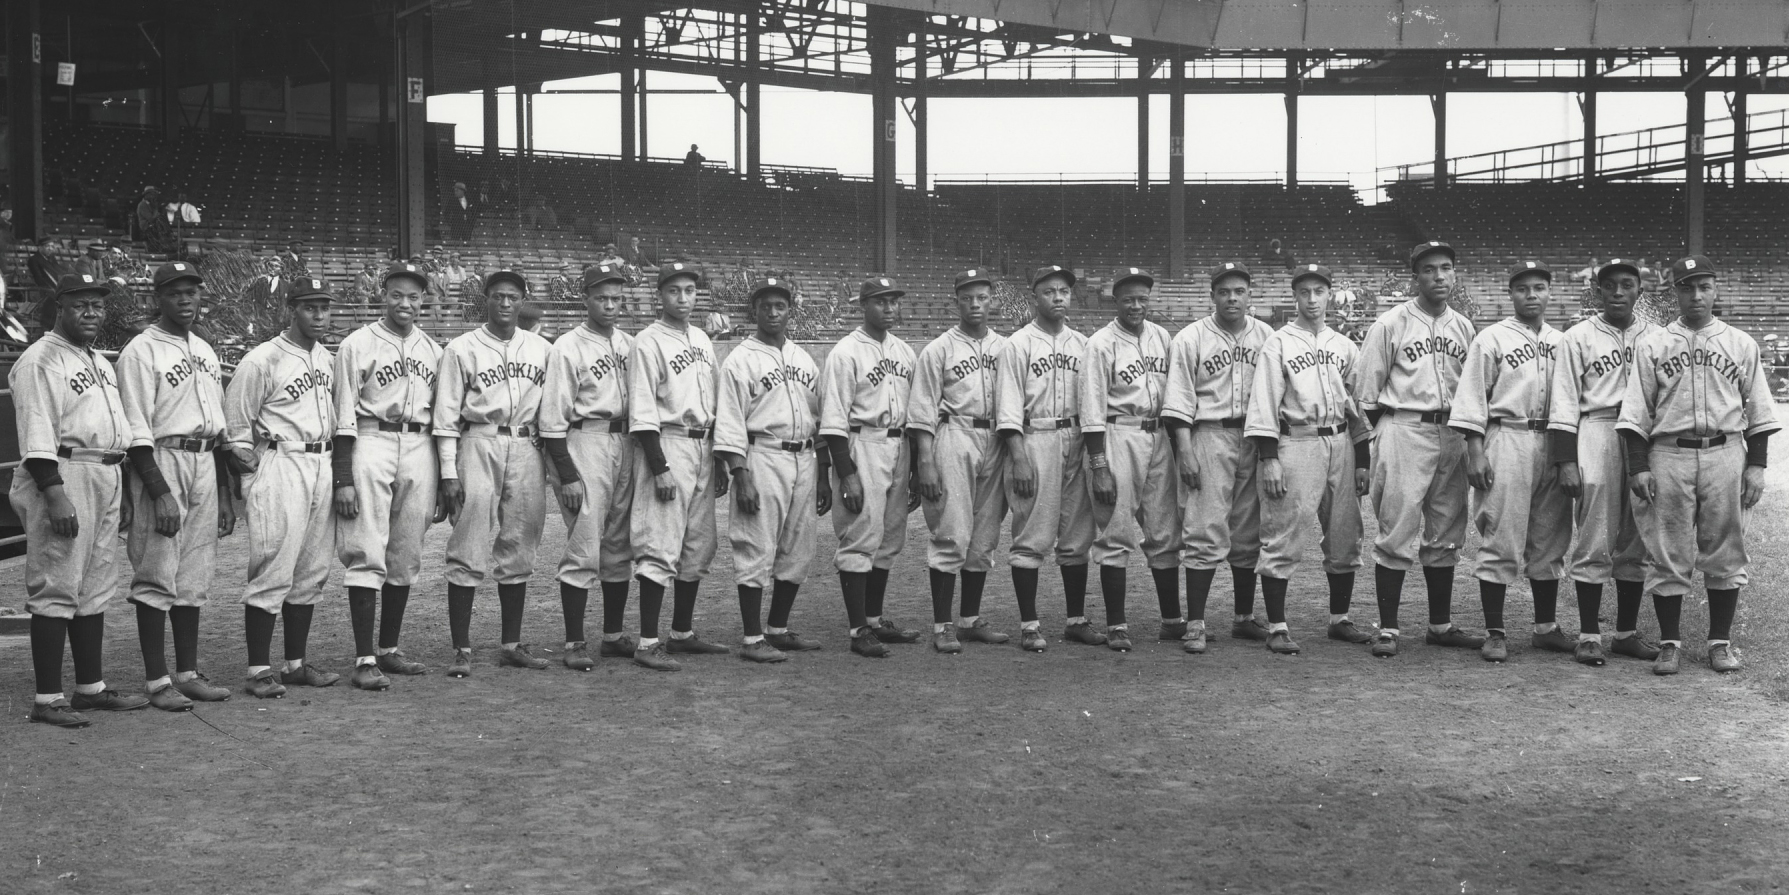 1942 Negro World Series: Two legends face off | National Museum of